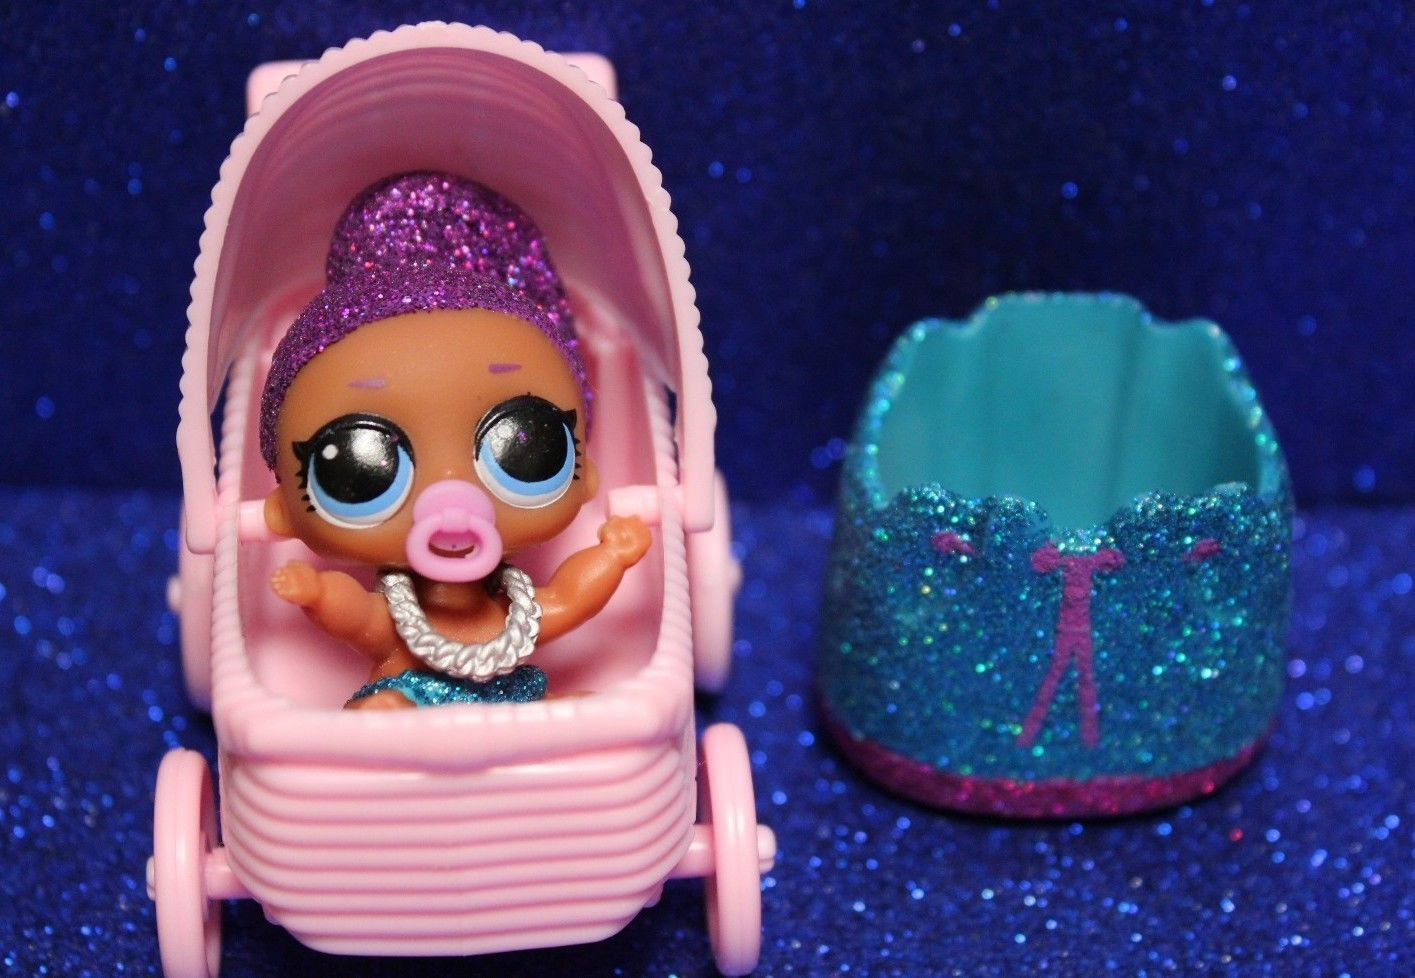 Lol surprise lil sisters series 4 lil bling queen w stroller newly opened